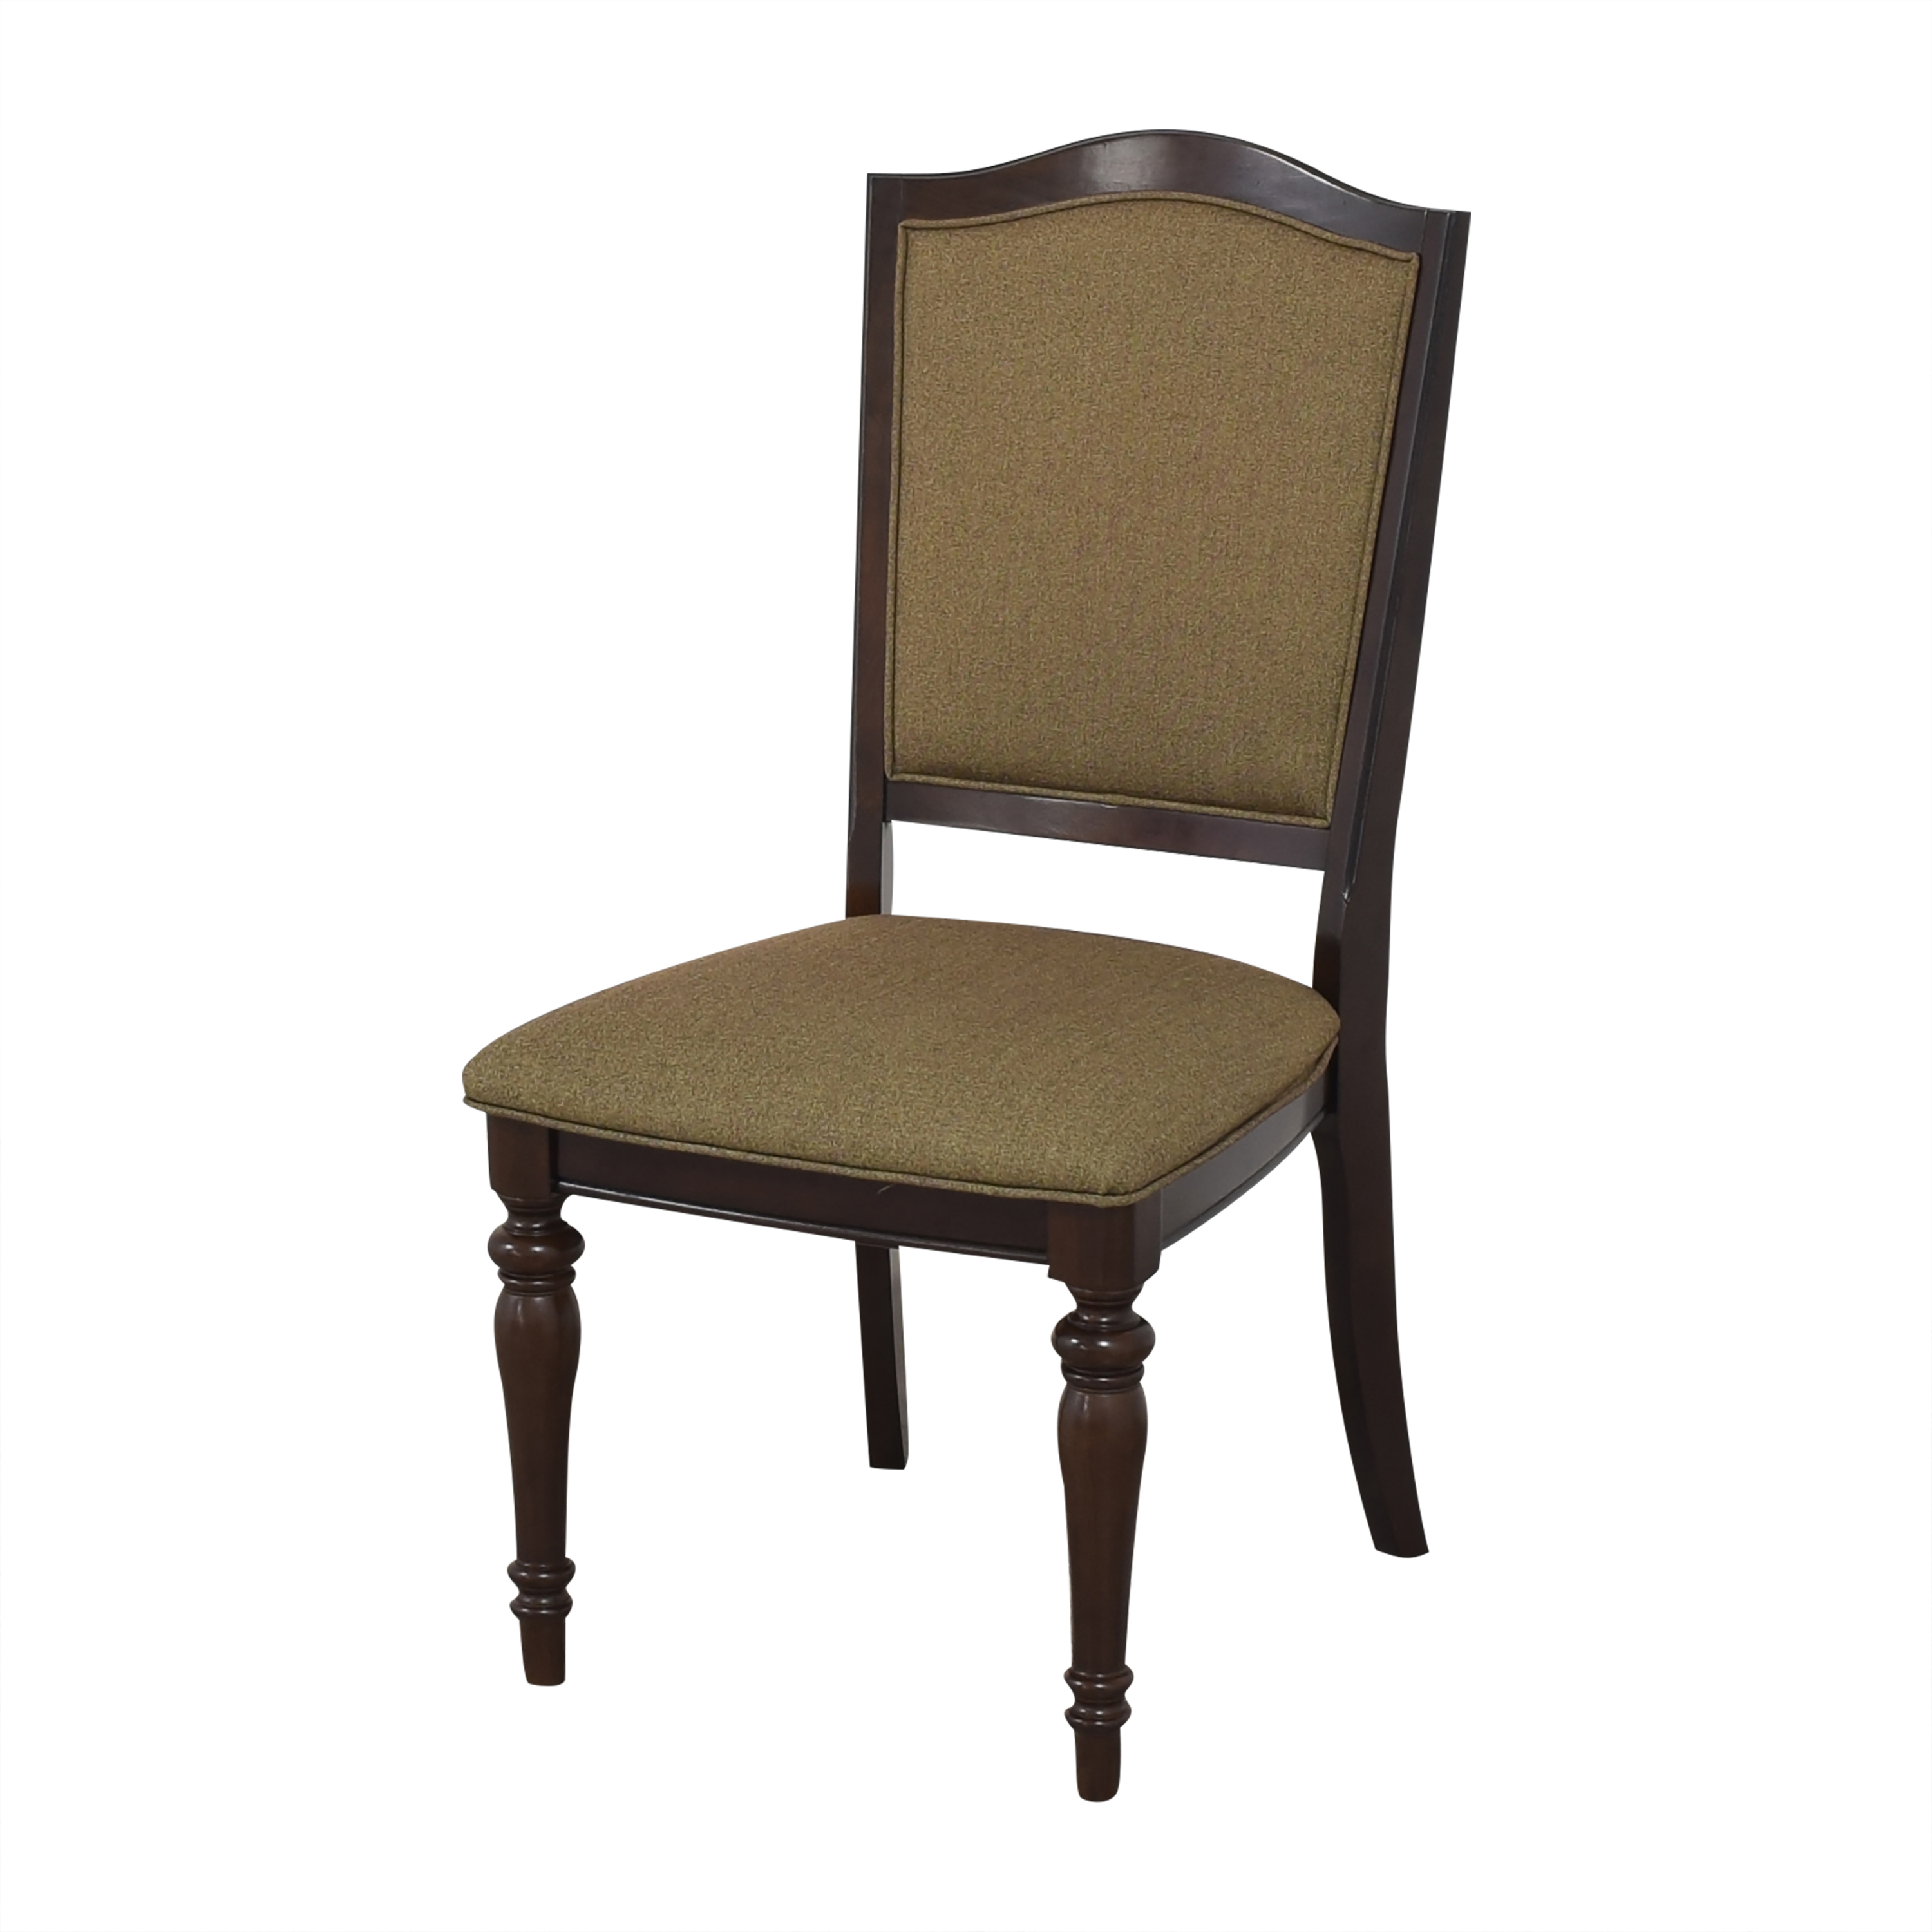 Raymour & Flanigan Raymour & Flanigan Bay City Dining Chairs discount